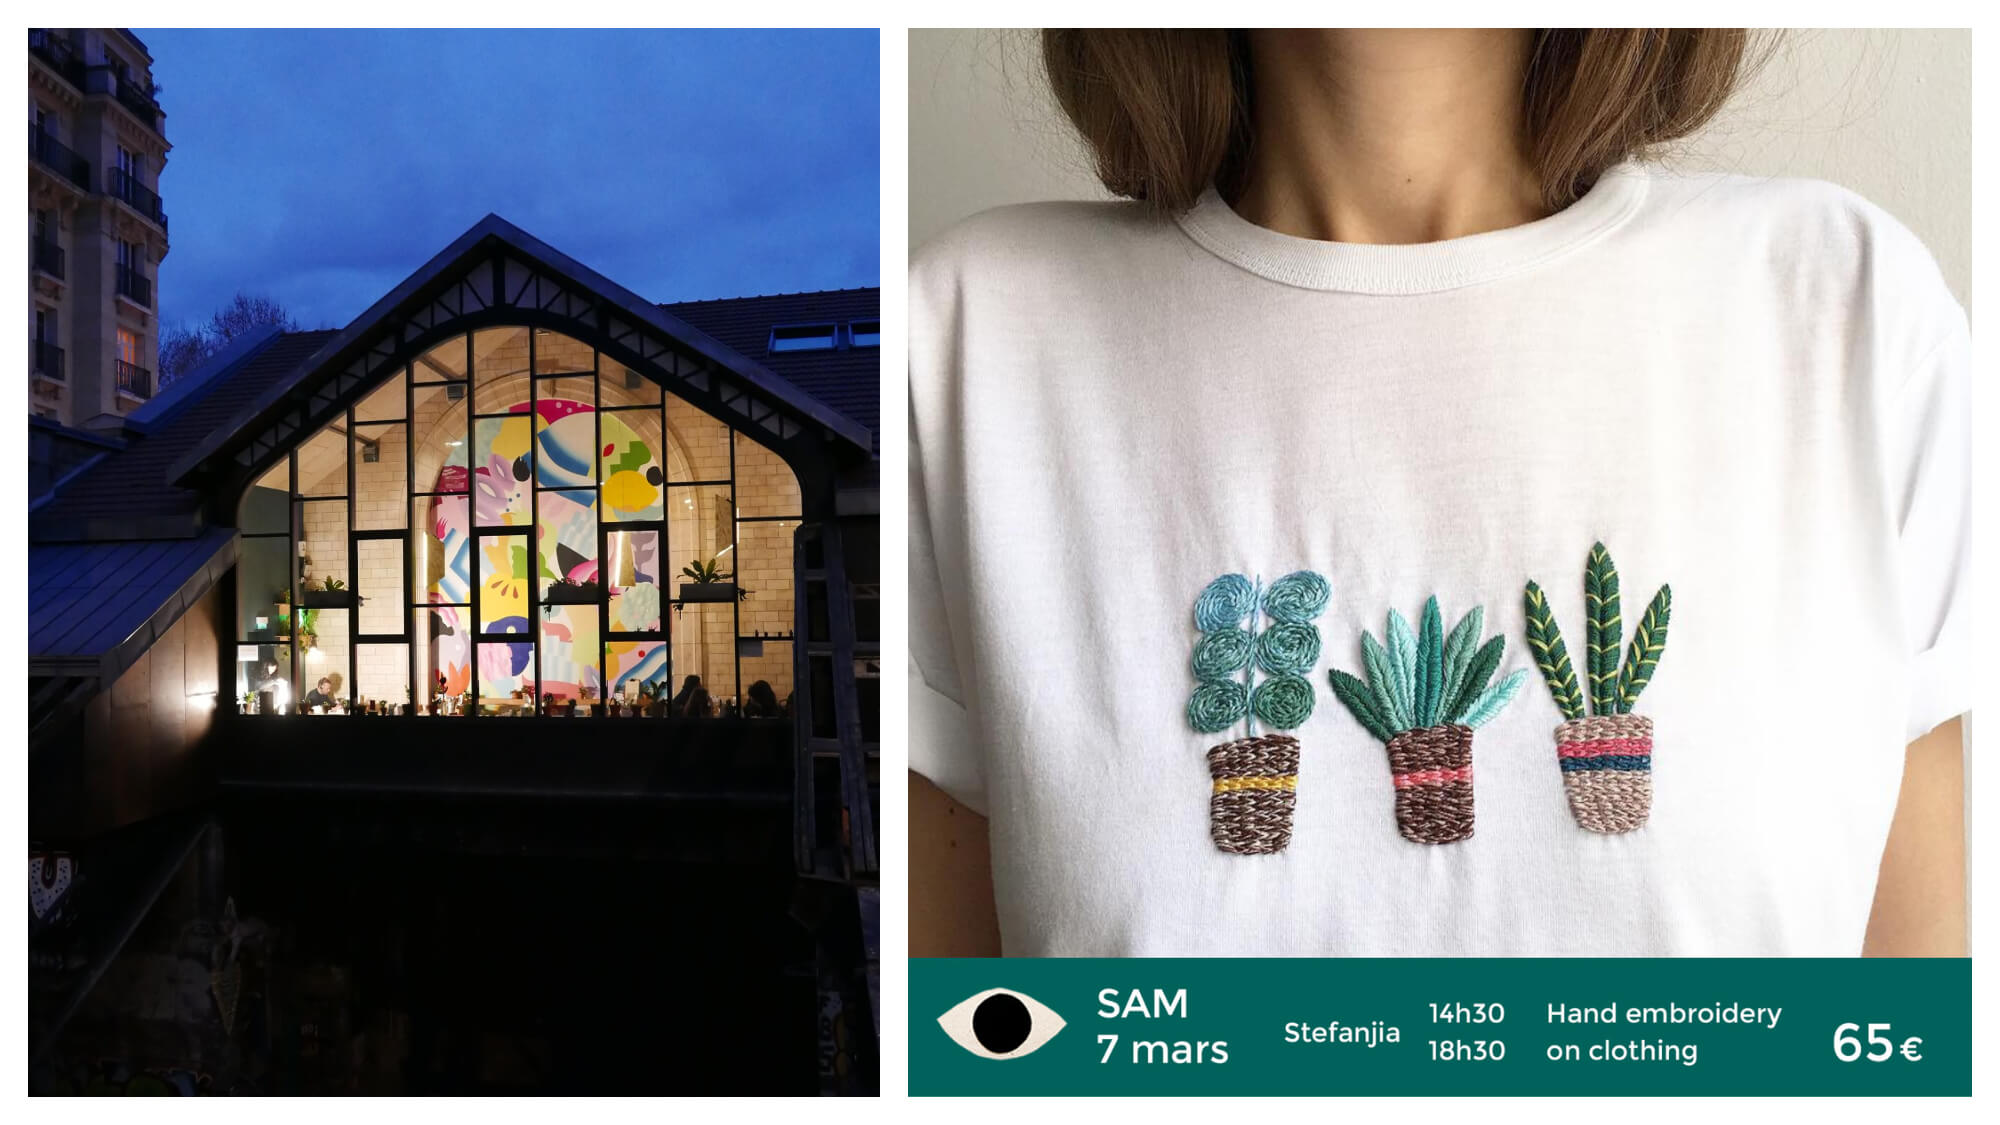 Left, the Hasard Ludique venue in Paris lit by night. Right, a girl wearing a t-shirt with embroidered cacti.